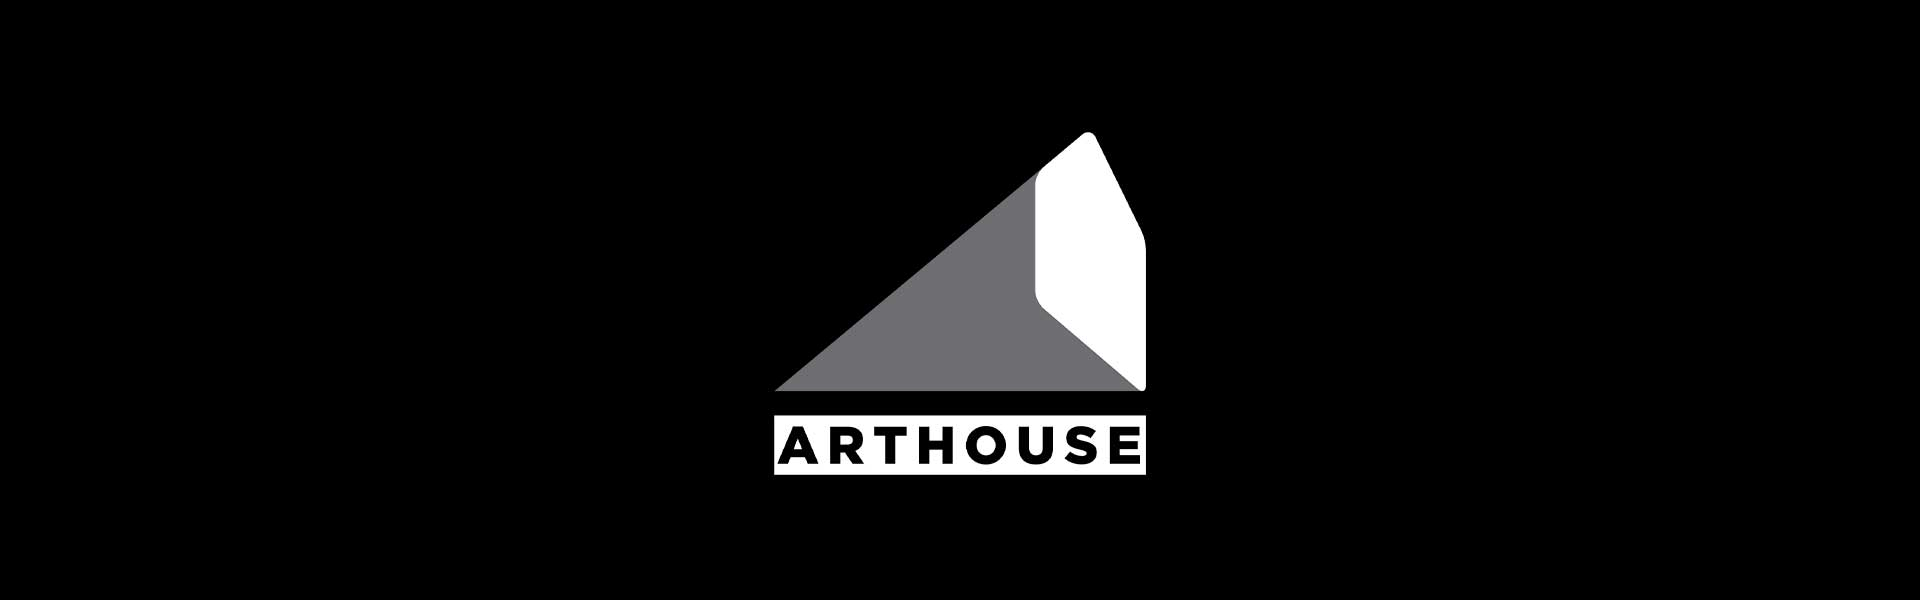 ARTHOUSE BR DISTRIBUIDORA